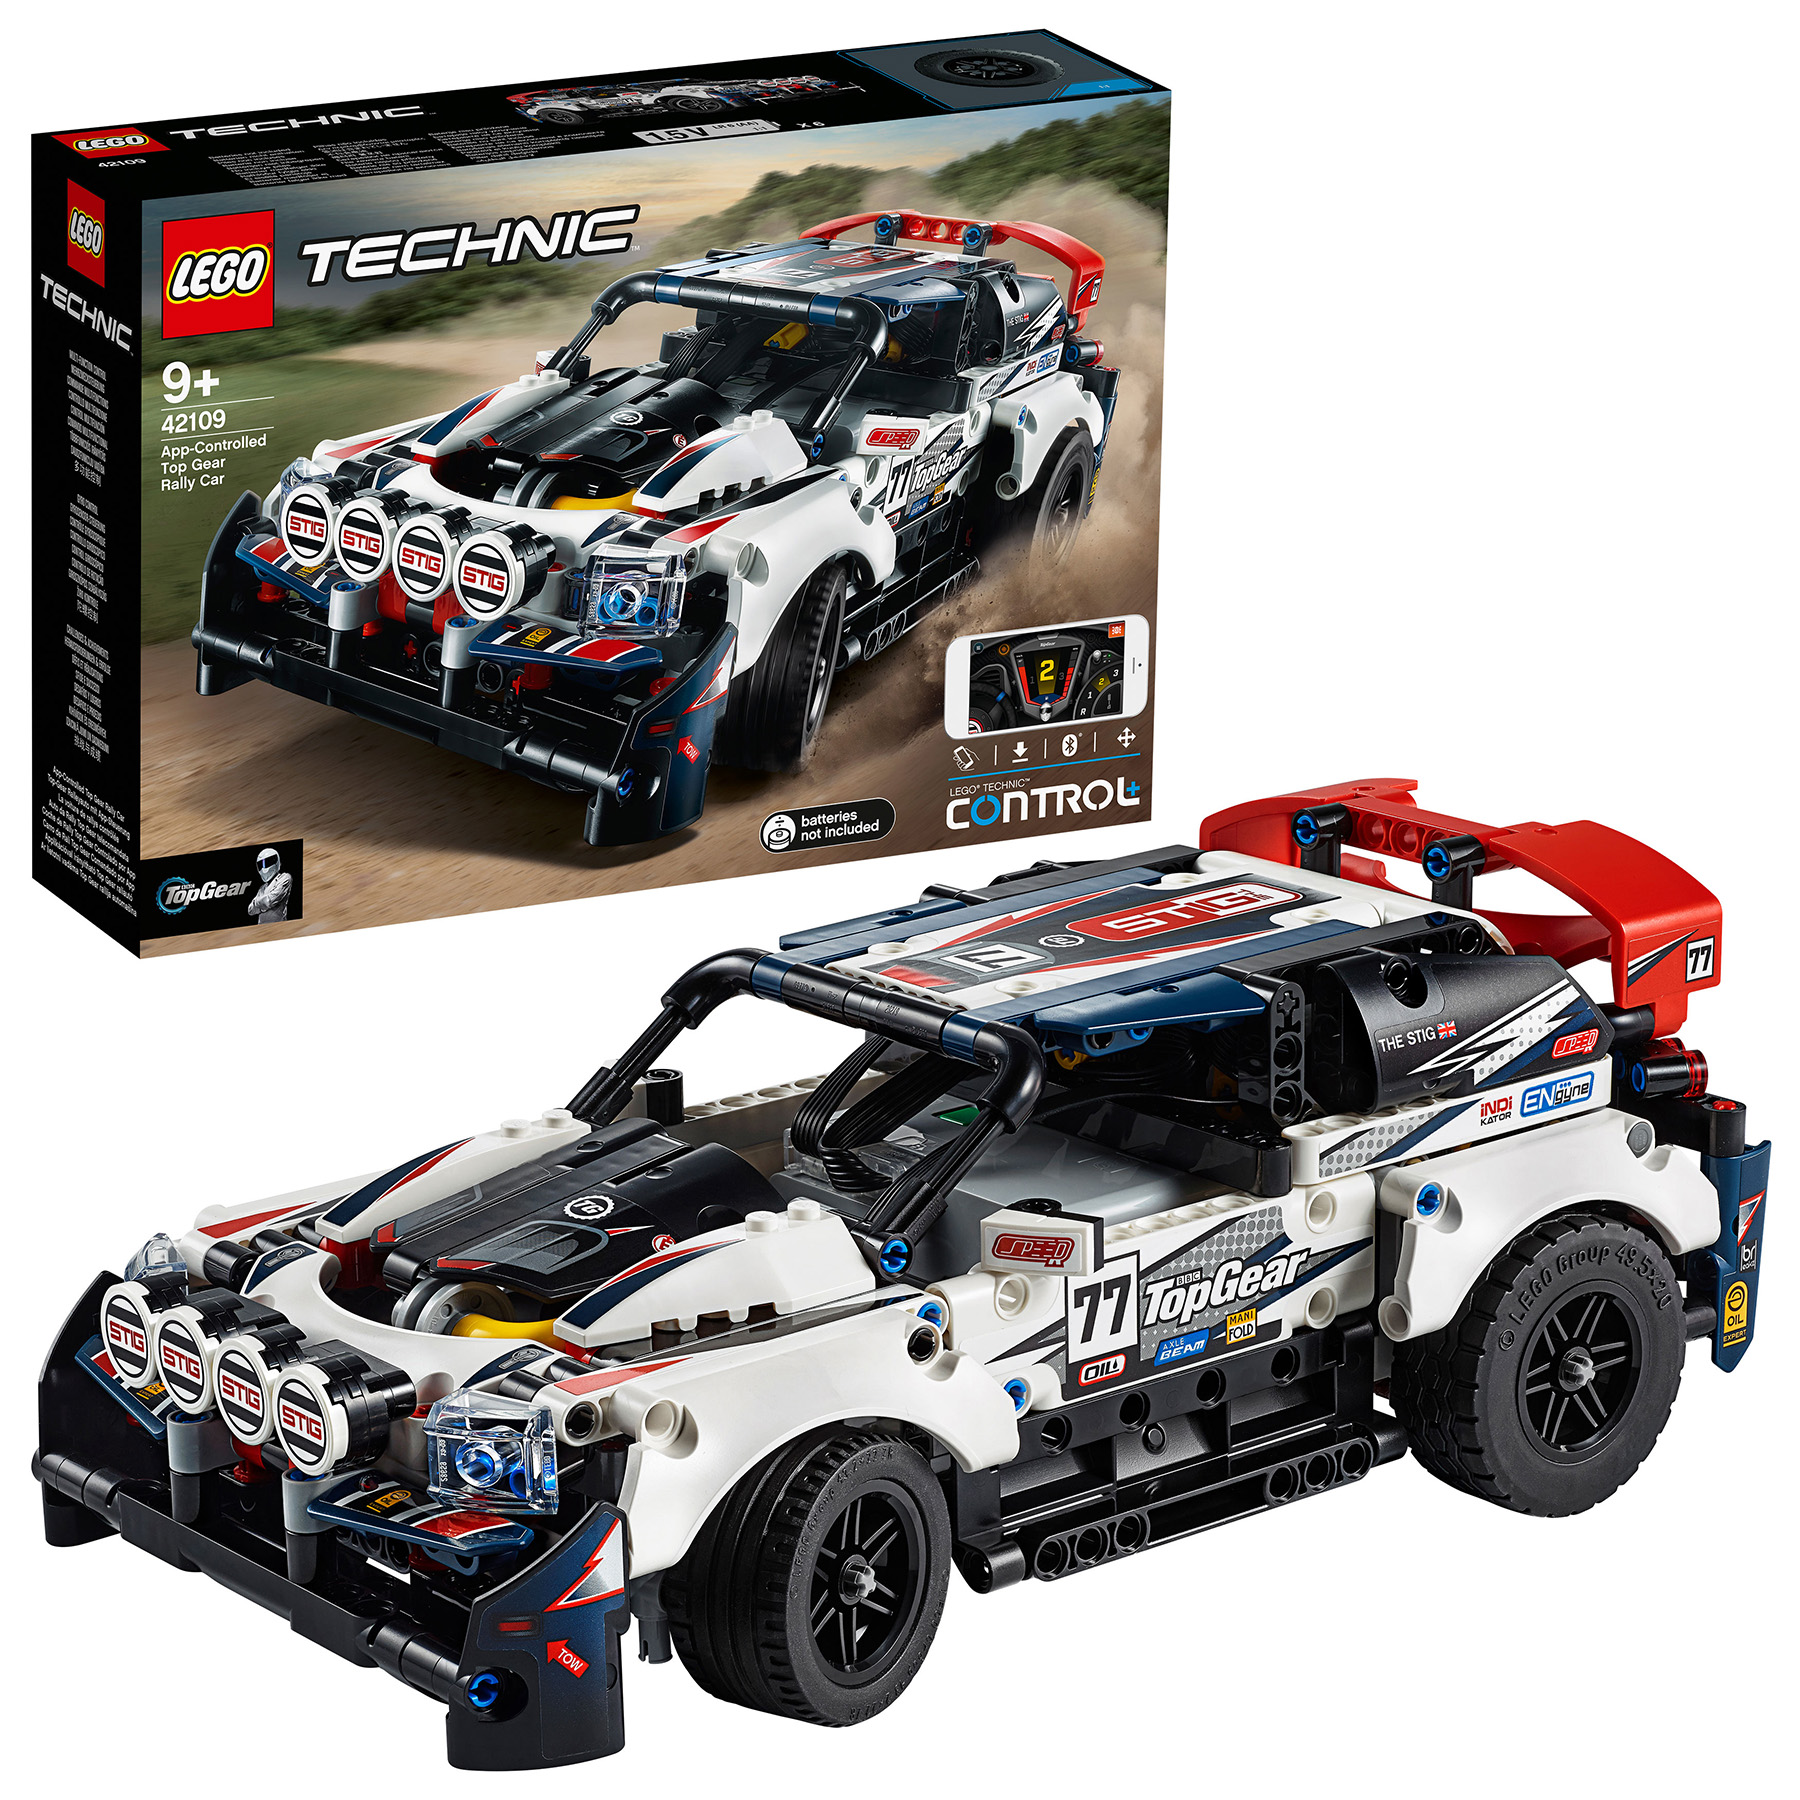 Designer Lego Technic 42109 Racing Car Top Gear On Management